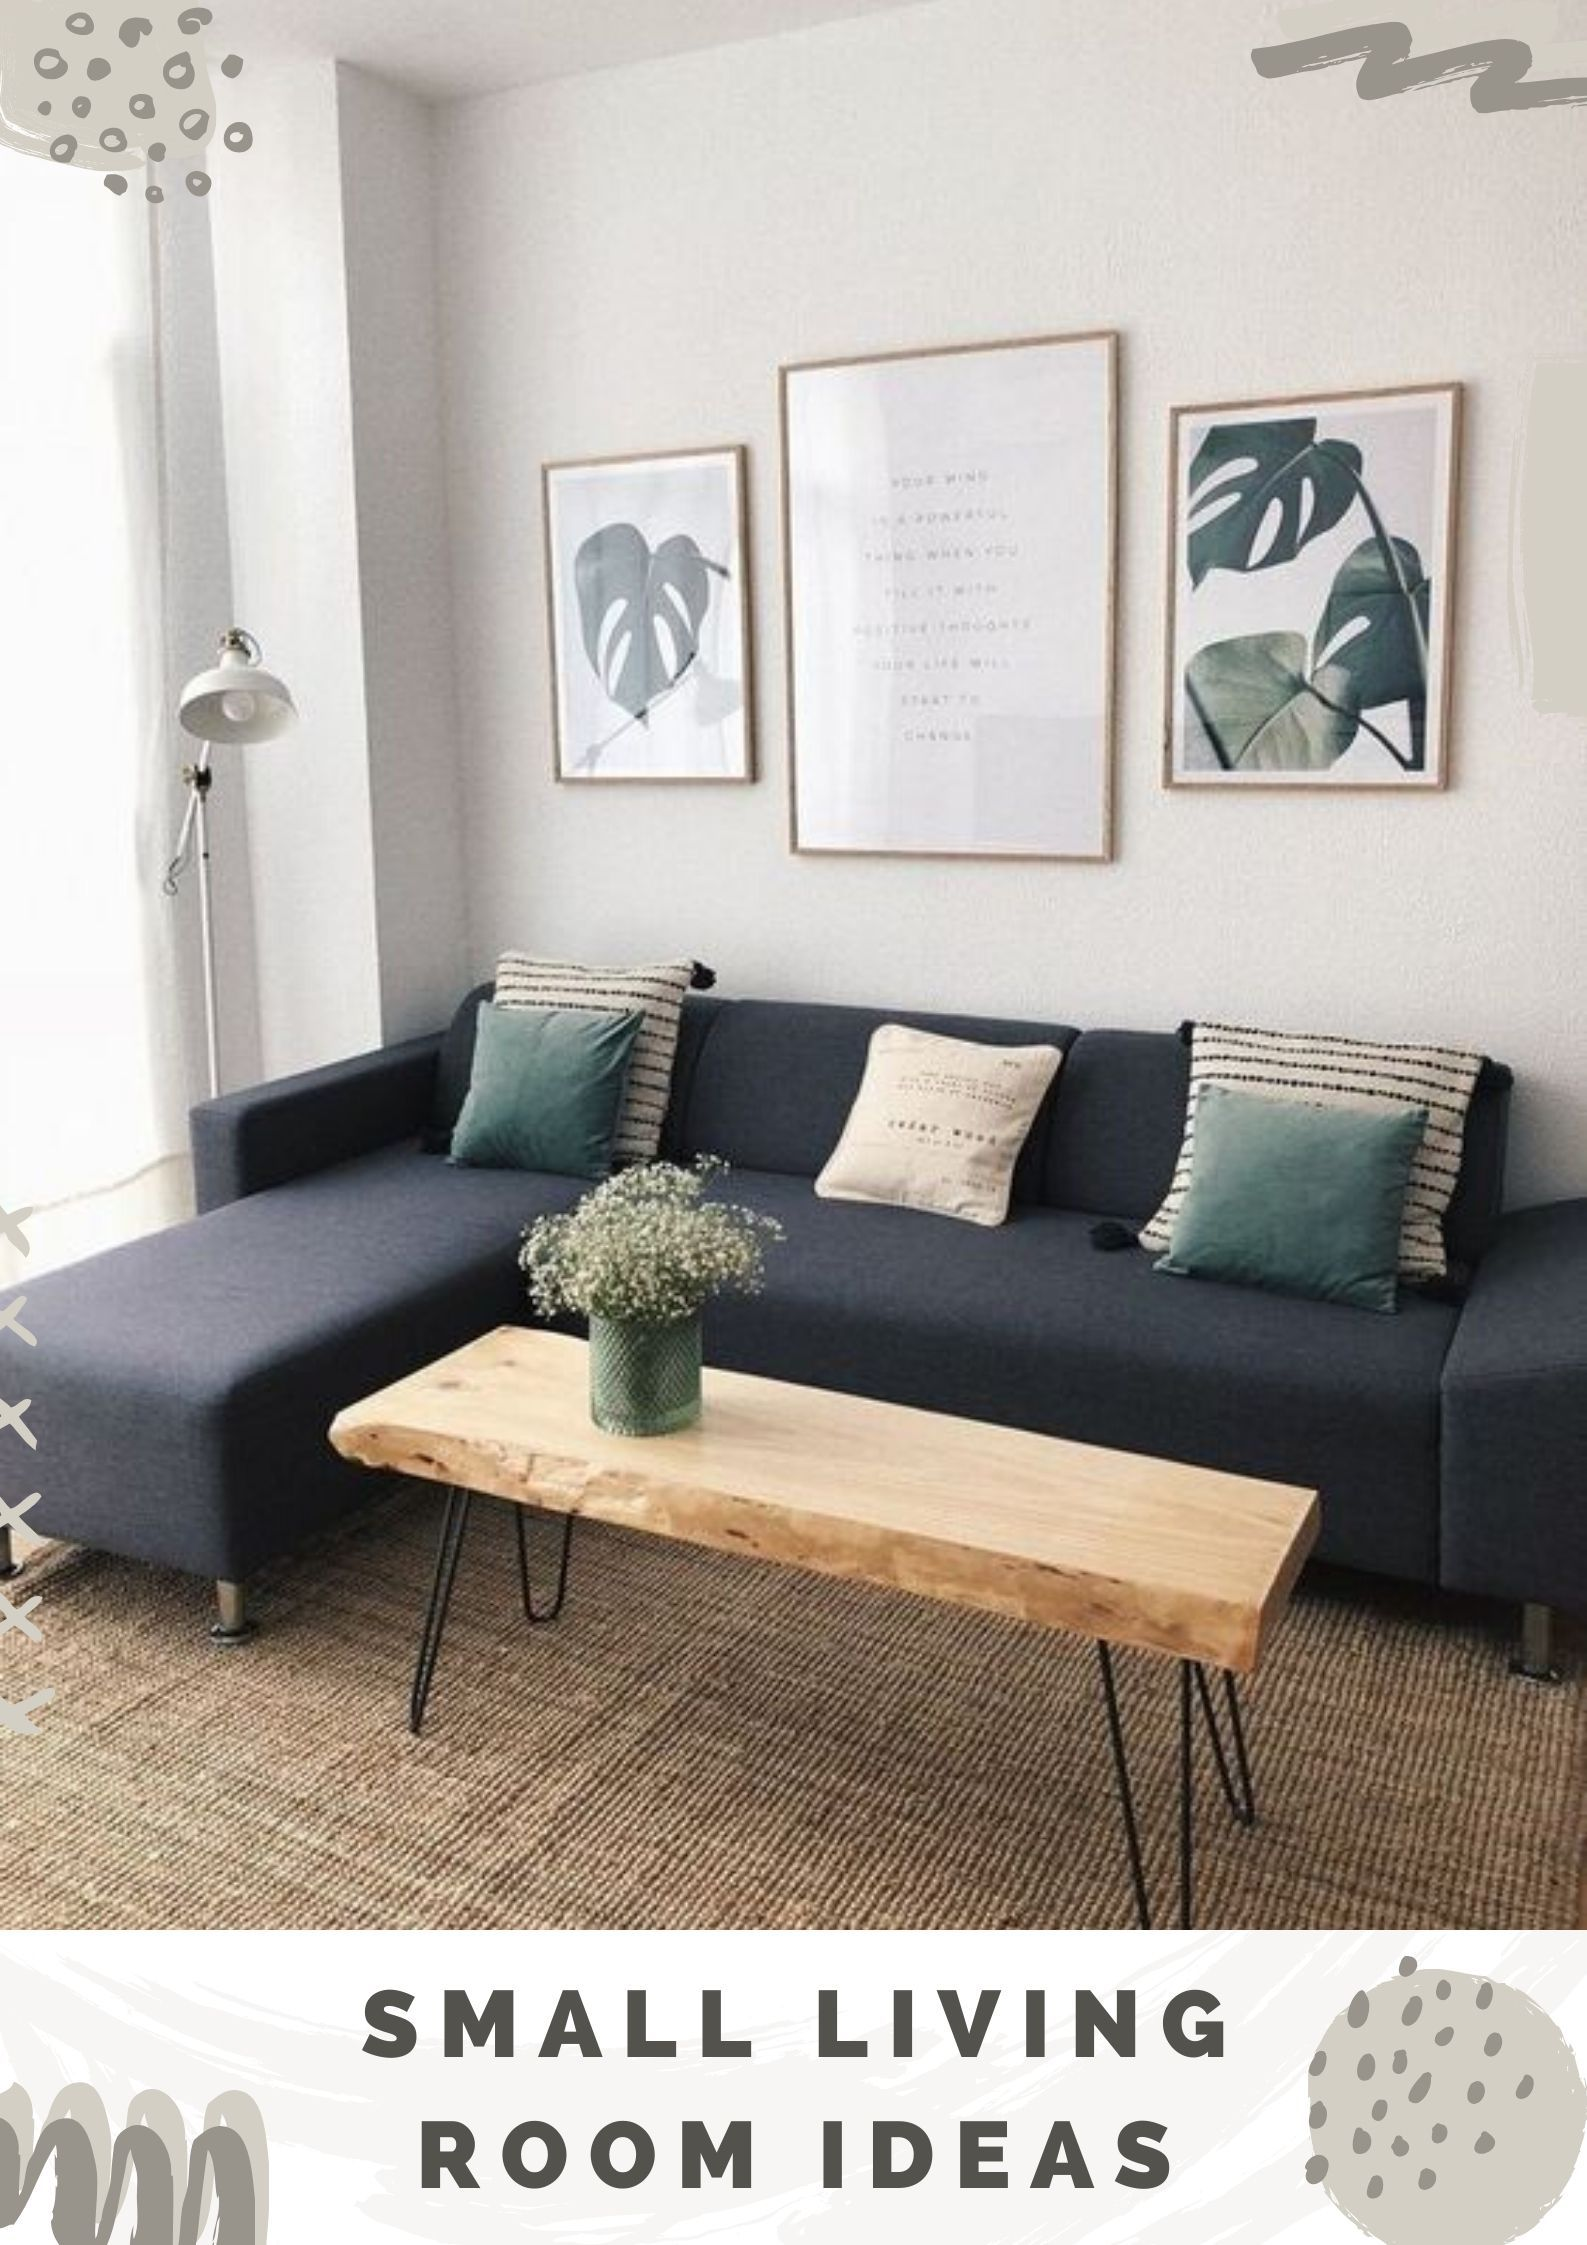 Dazzling Small Living Room Ideas For Your Adorable Space Salas